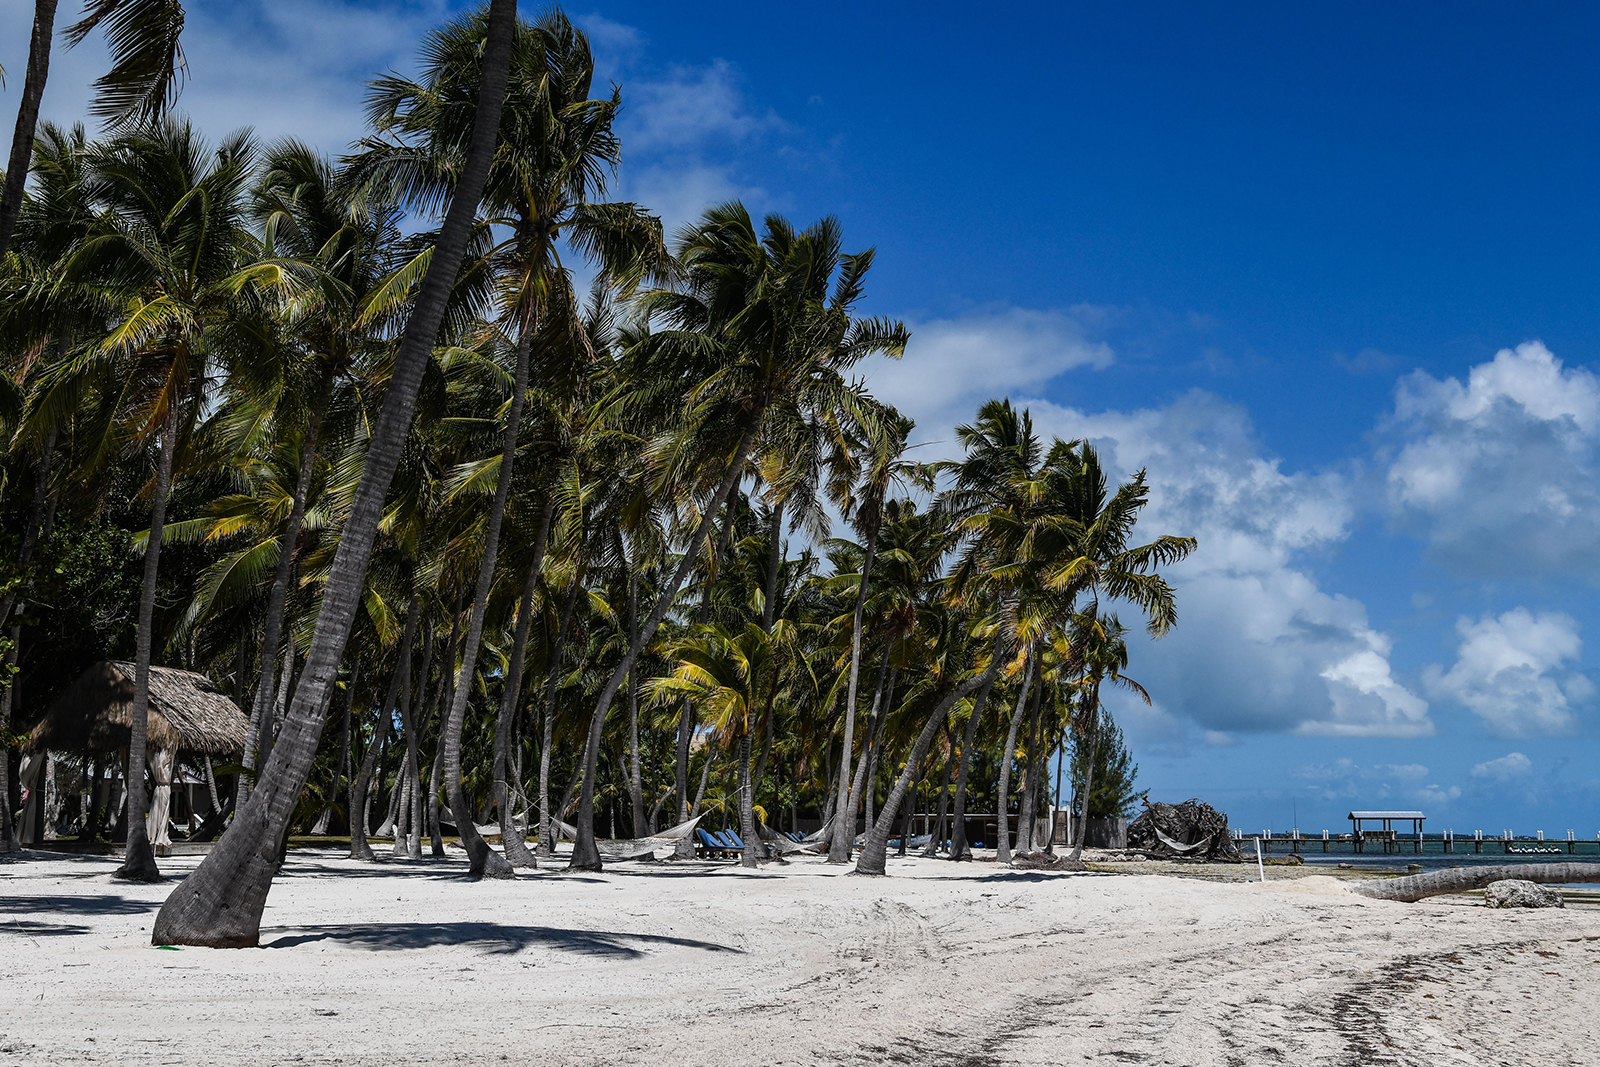 Empty lounge chairs are seen on the deserted beach of Florida Keys on March 22.